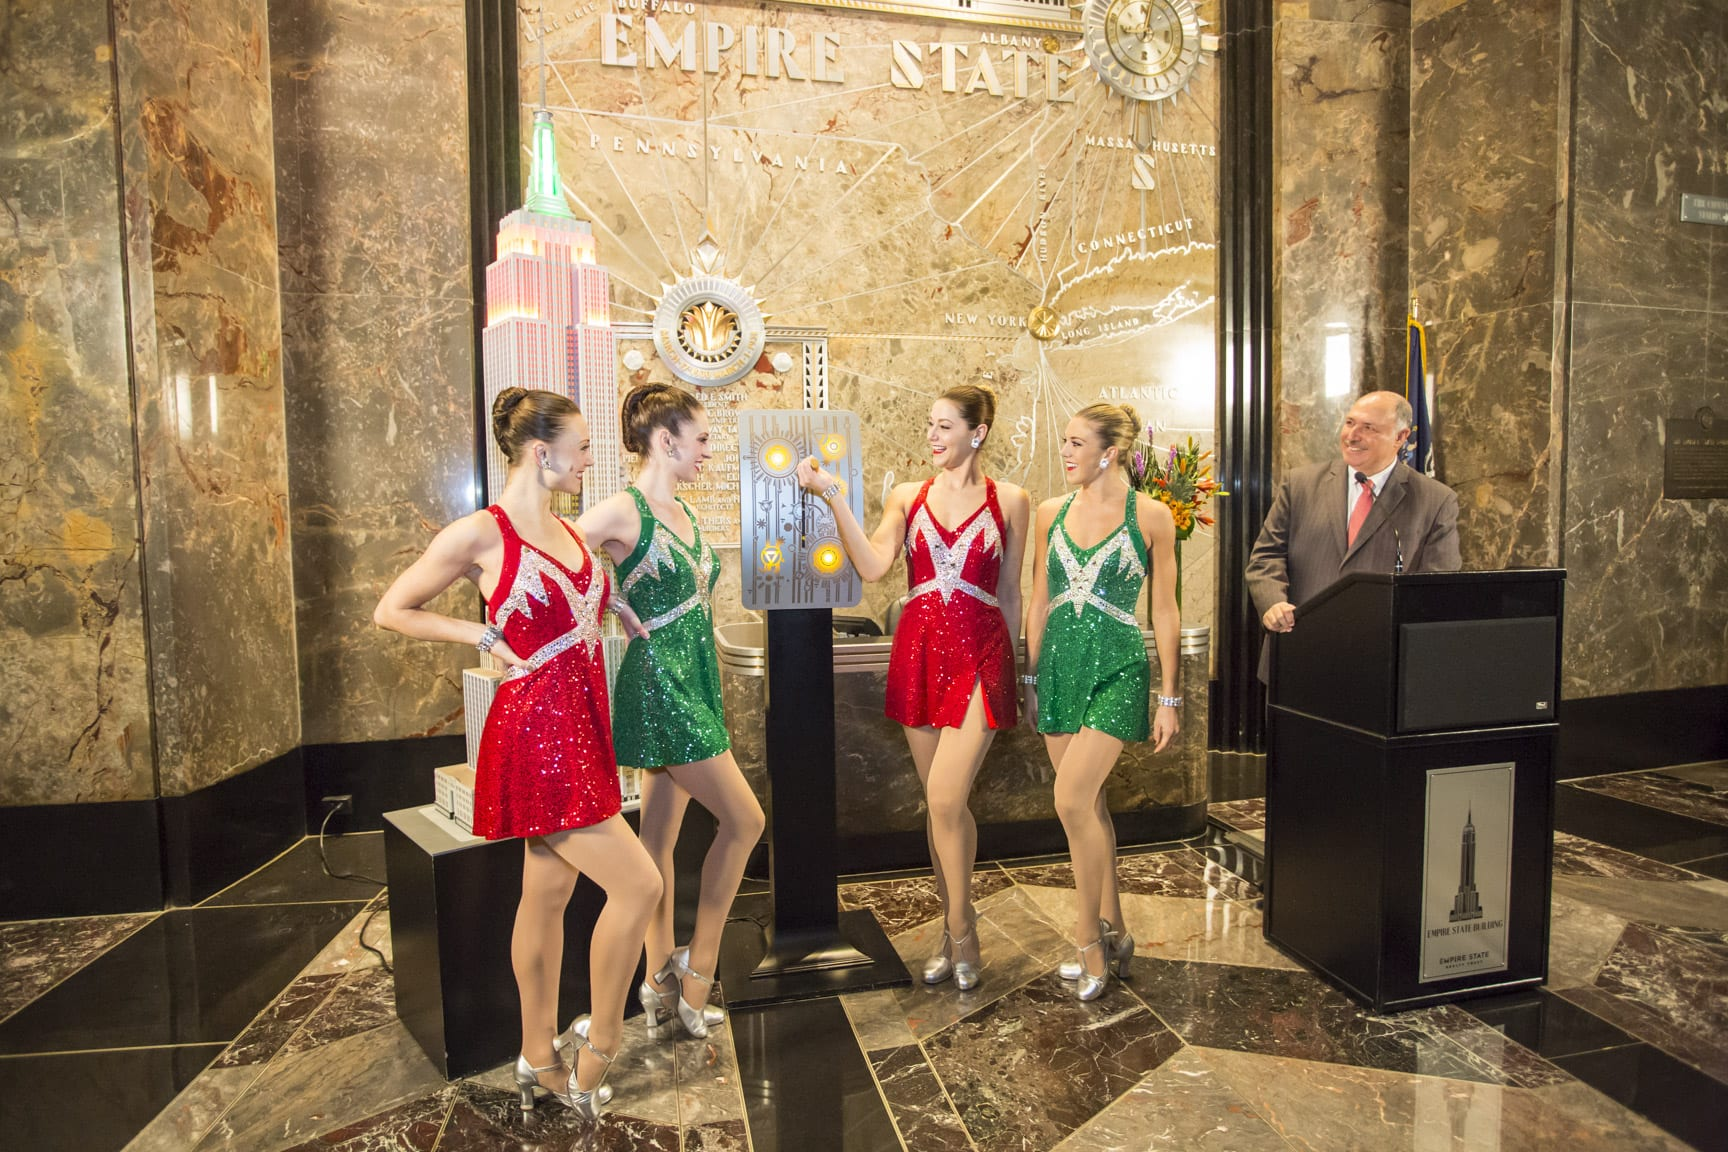 christmas-spectacular-empire-state-building-colors-rockettes